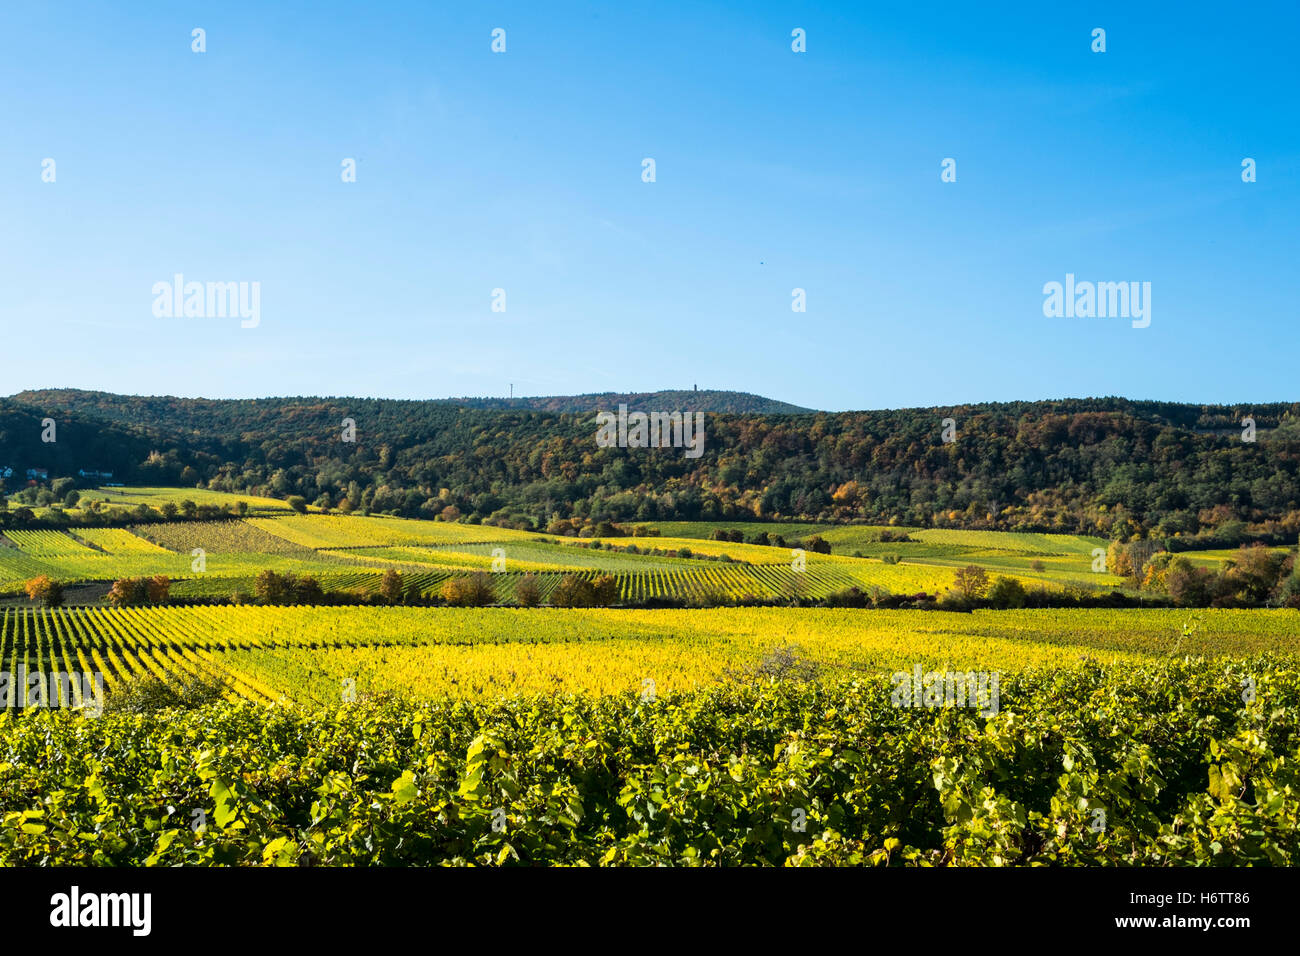 Vineyards in autumn, Pfalz region, Germany Stock Photo